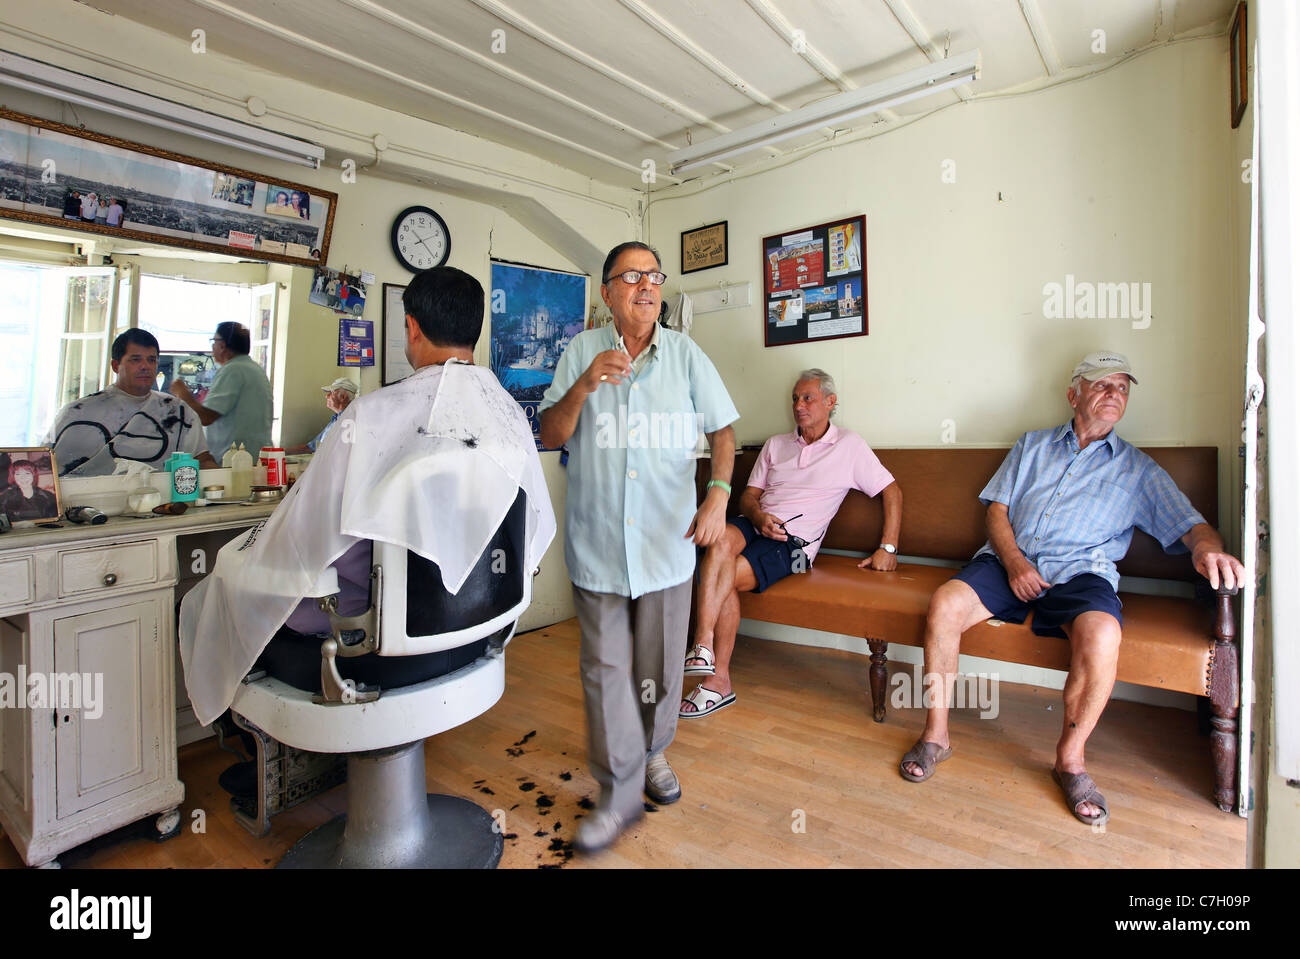 Traditional barber shop at Preveza town, Epirus, Greece Stock Photo